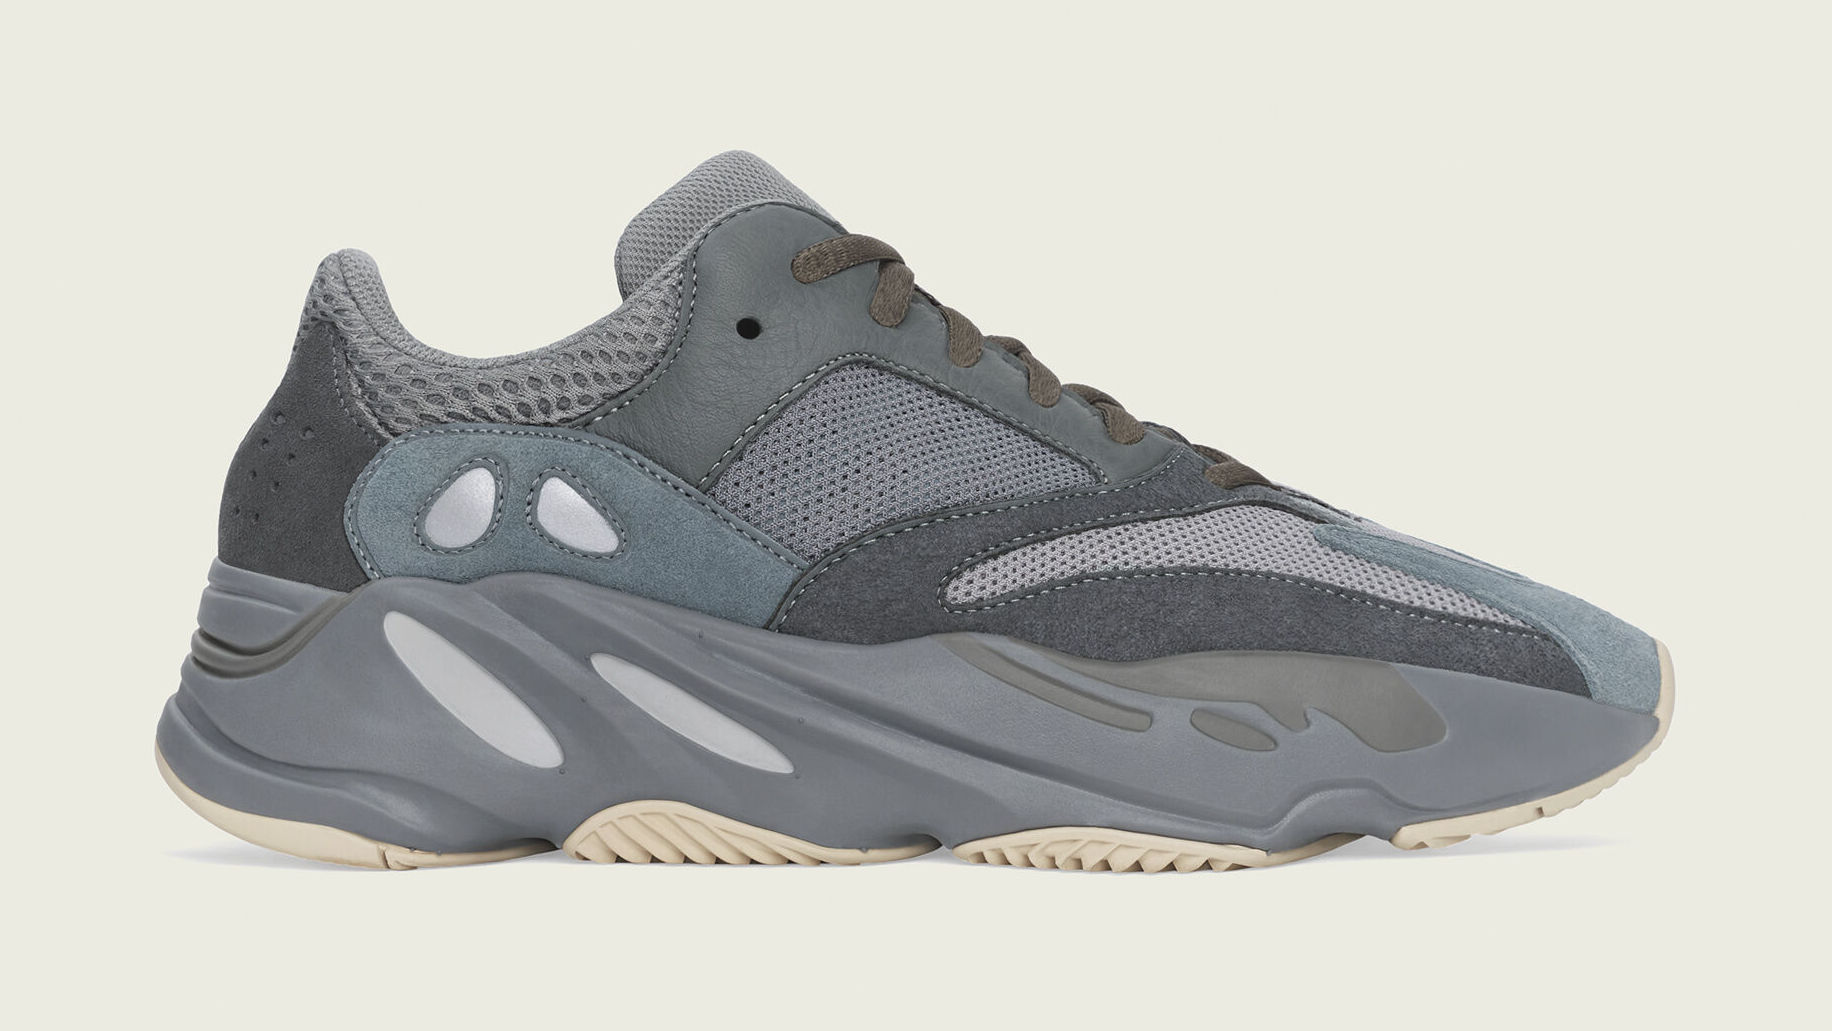 'Teal Blue' Yeezy Boost 700s Get New Release Date